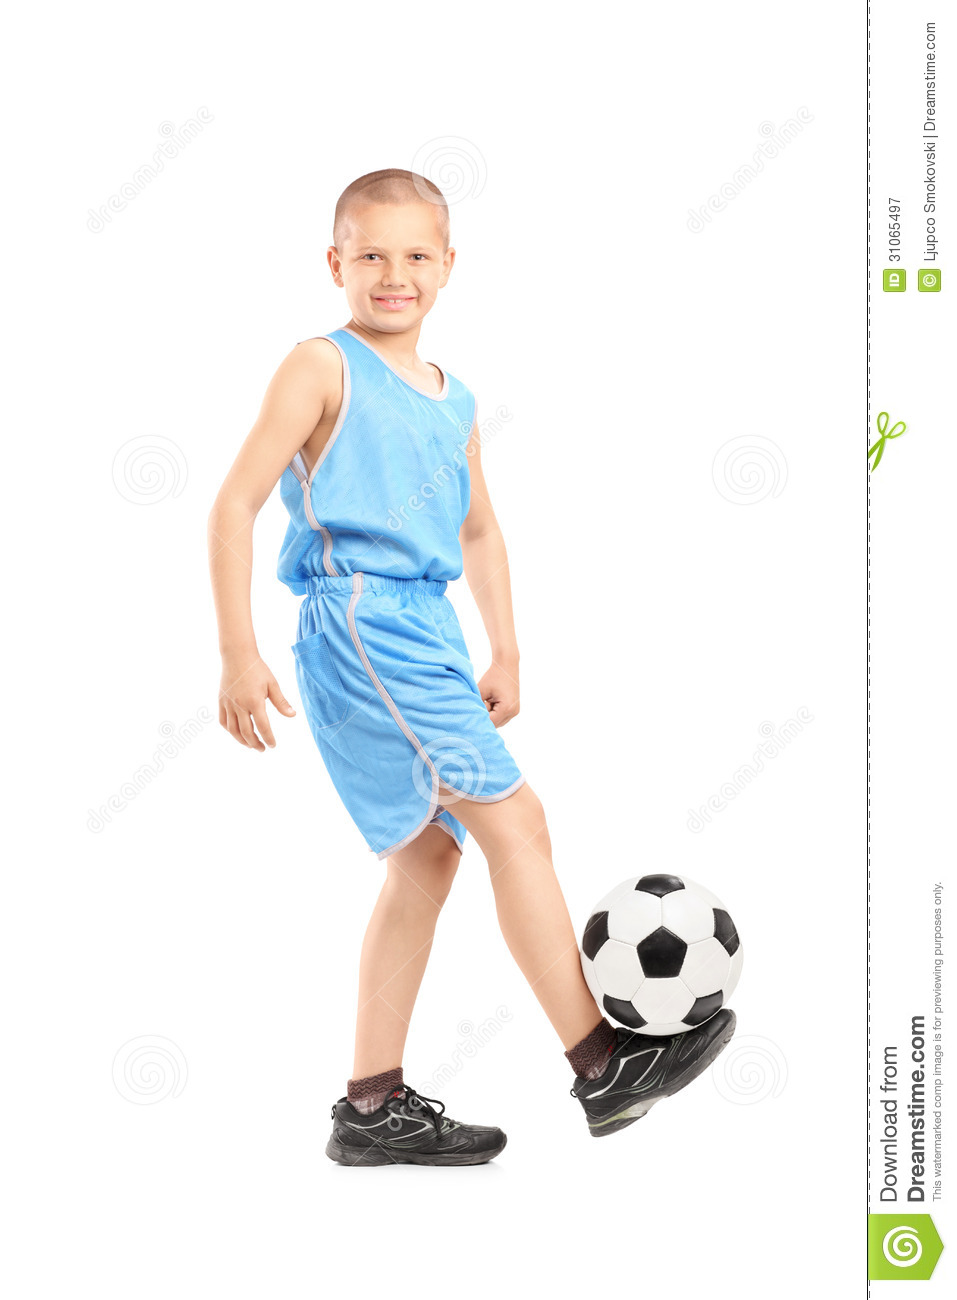 full length portrait of a child playing with a soccer ball